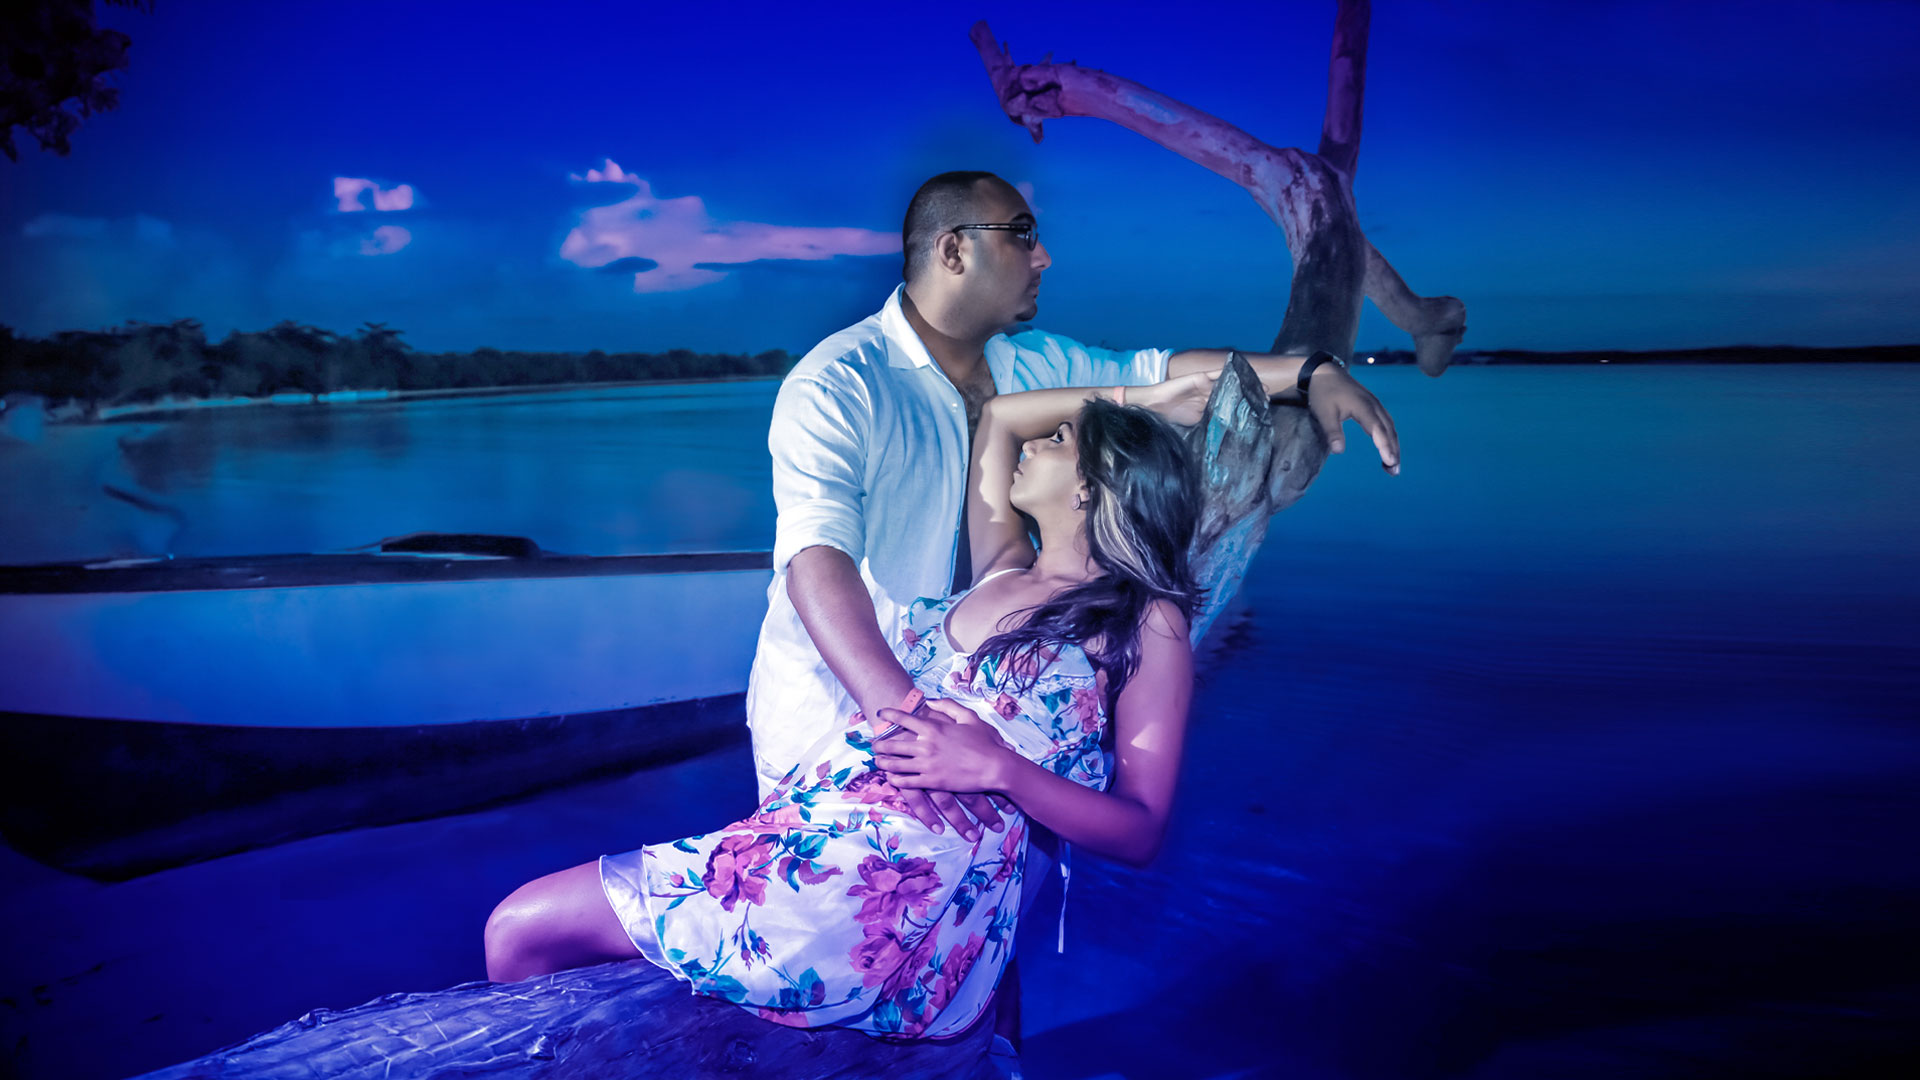 epic_sky_pictures_jamaica_boat_wedding_couples_photography_toronto_photo_night_love_brampton_vancouver_los_angeles_destination_photoshoot_eshoot